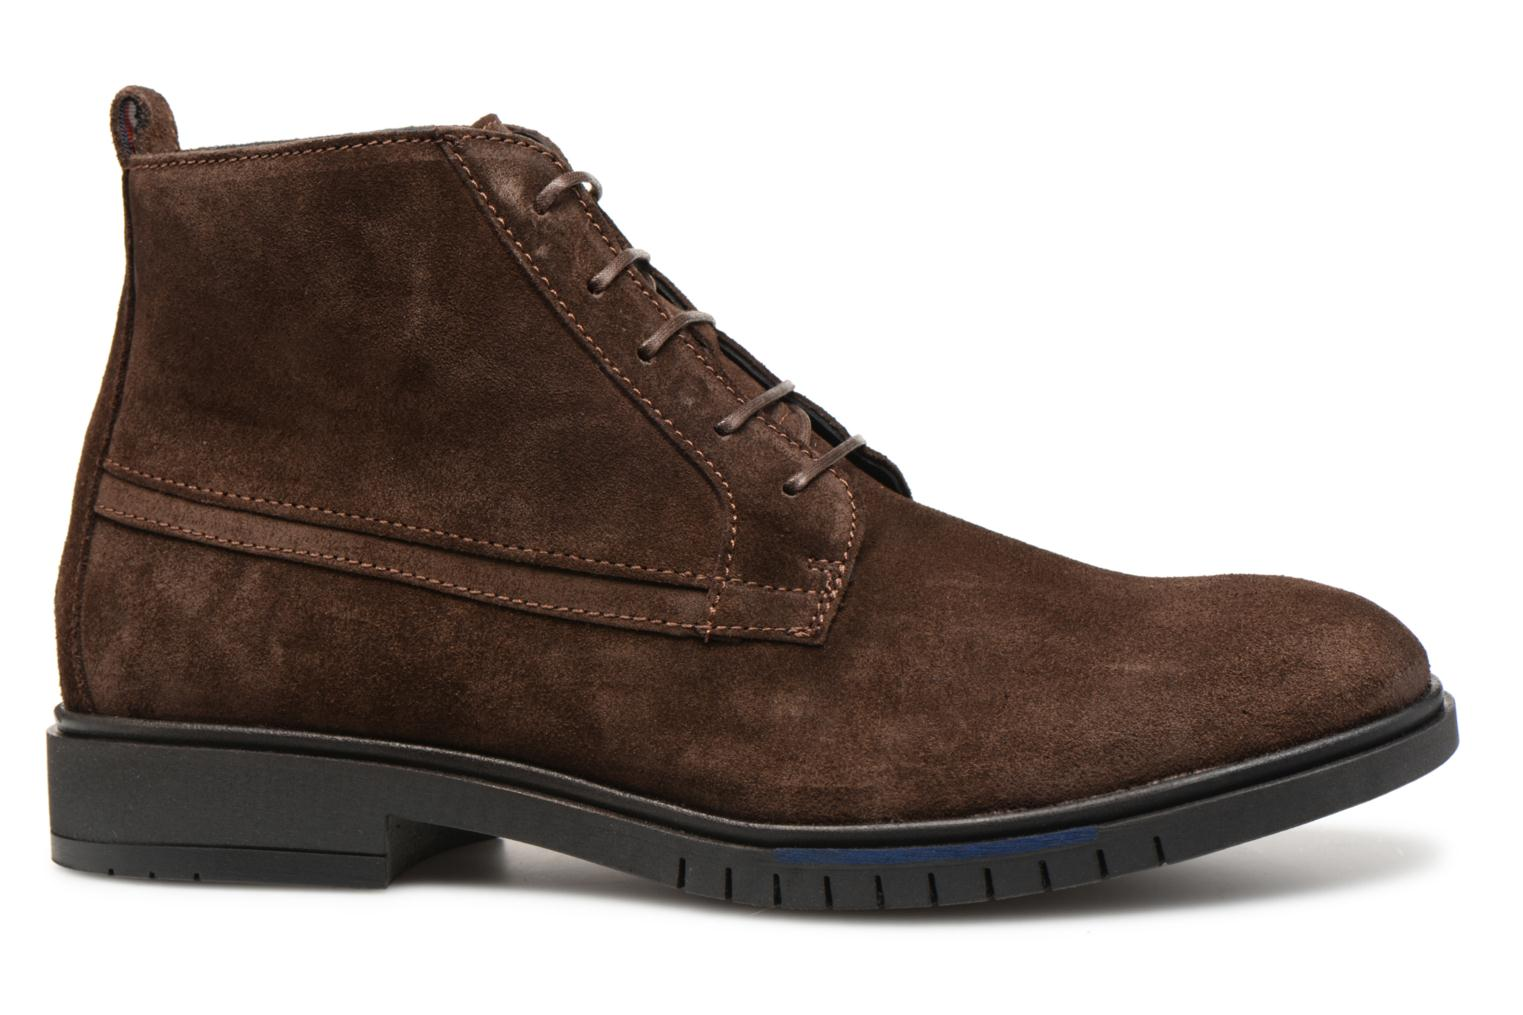 FLEXIBLE DRESSY SUEDE BOOT